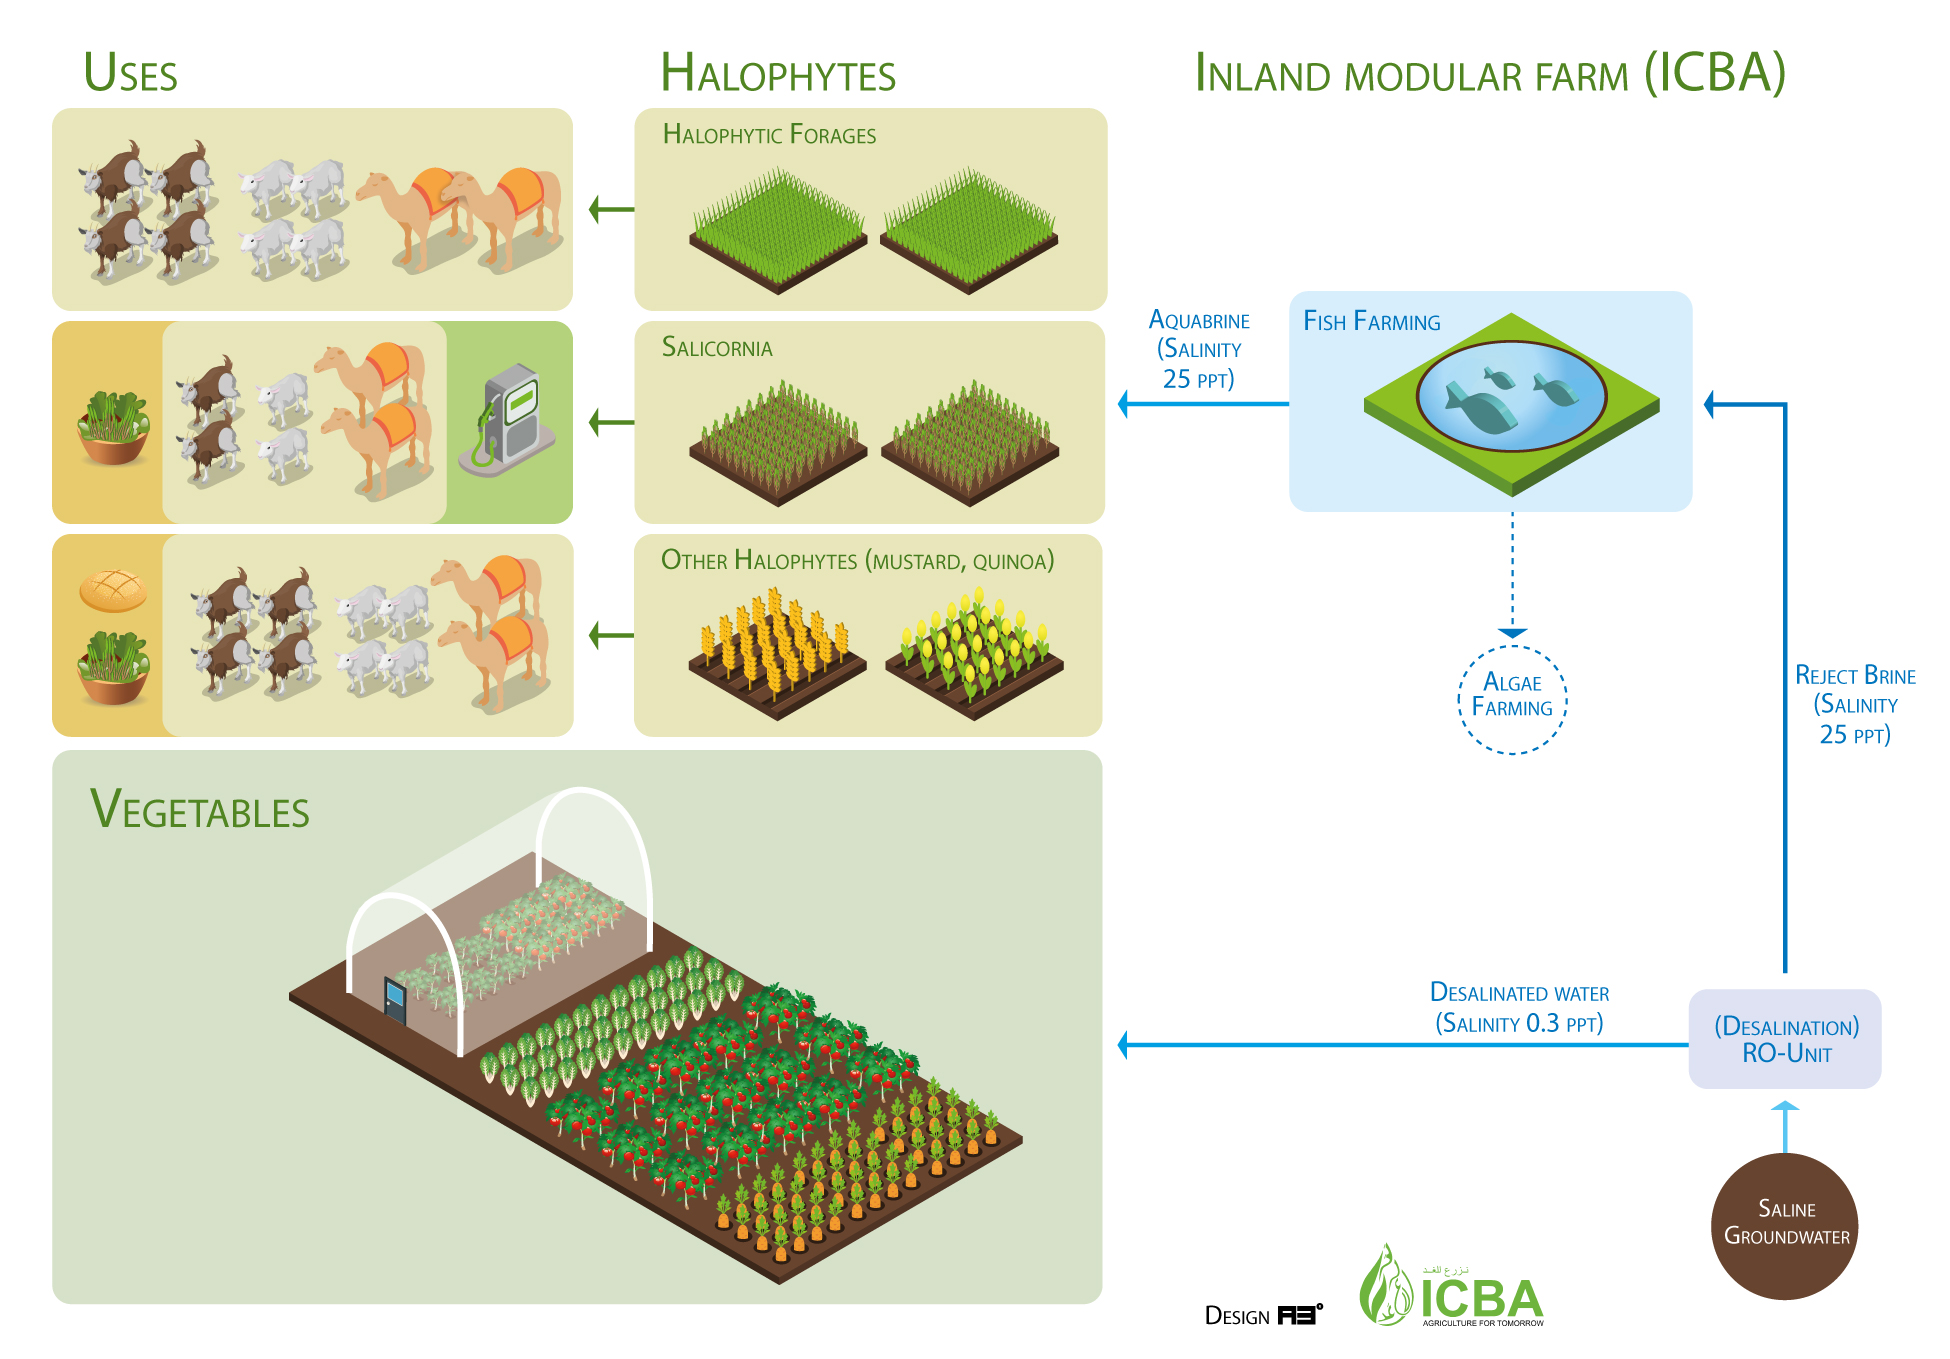 Figure 1. Integrated farm developed at ICBA's experimental station (inland modular farm) ©ICBA